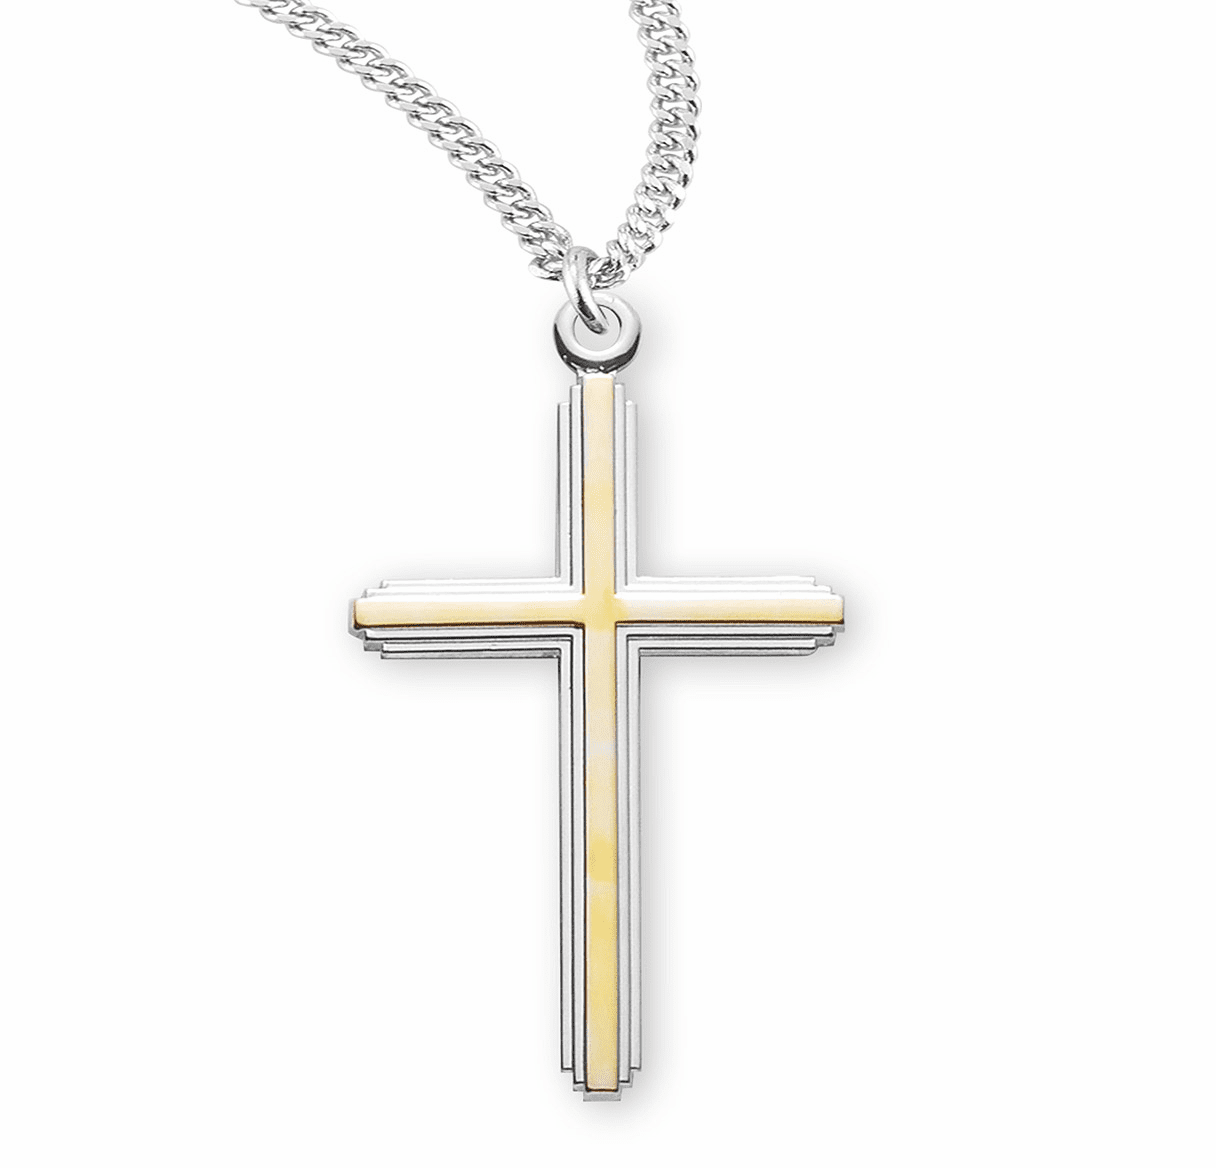 HMH Religious Large TuTone Inlayed Sterling Silver Cross Necklace